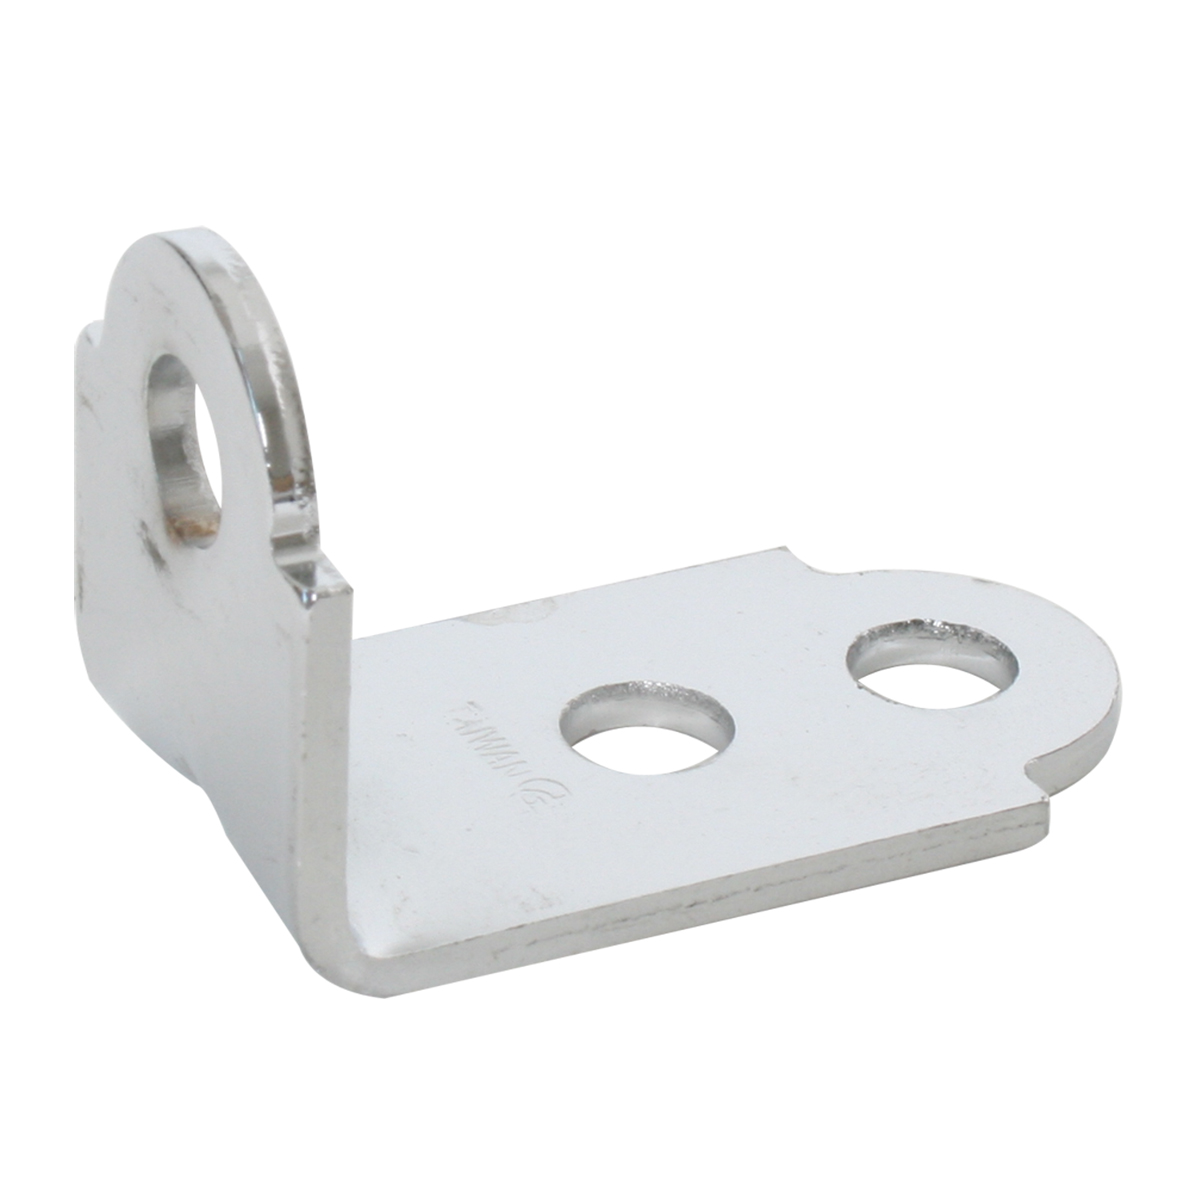 "L-Bracket (1.75"" x 1"" x 1.25"") for Mirror"